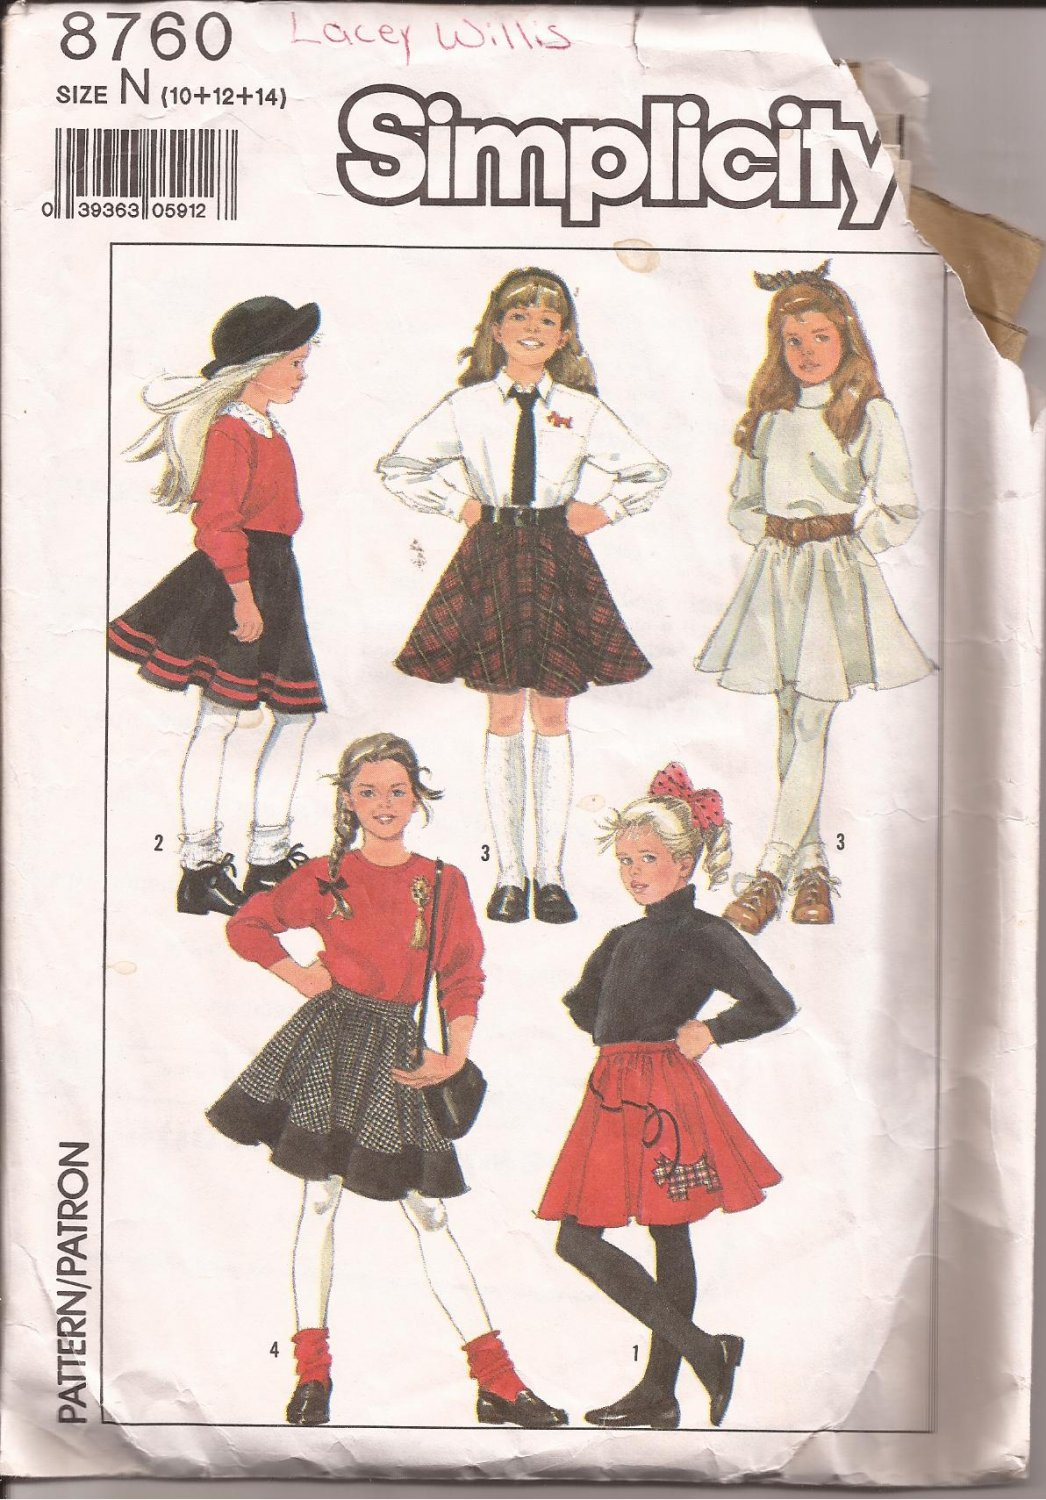 Simplicity 8760 (1988) Circle Skirt Applique Pattern Size 10 12 14 CUT to 14